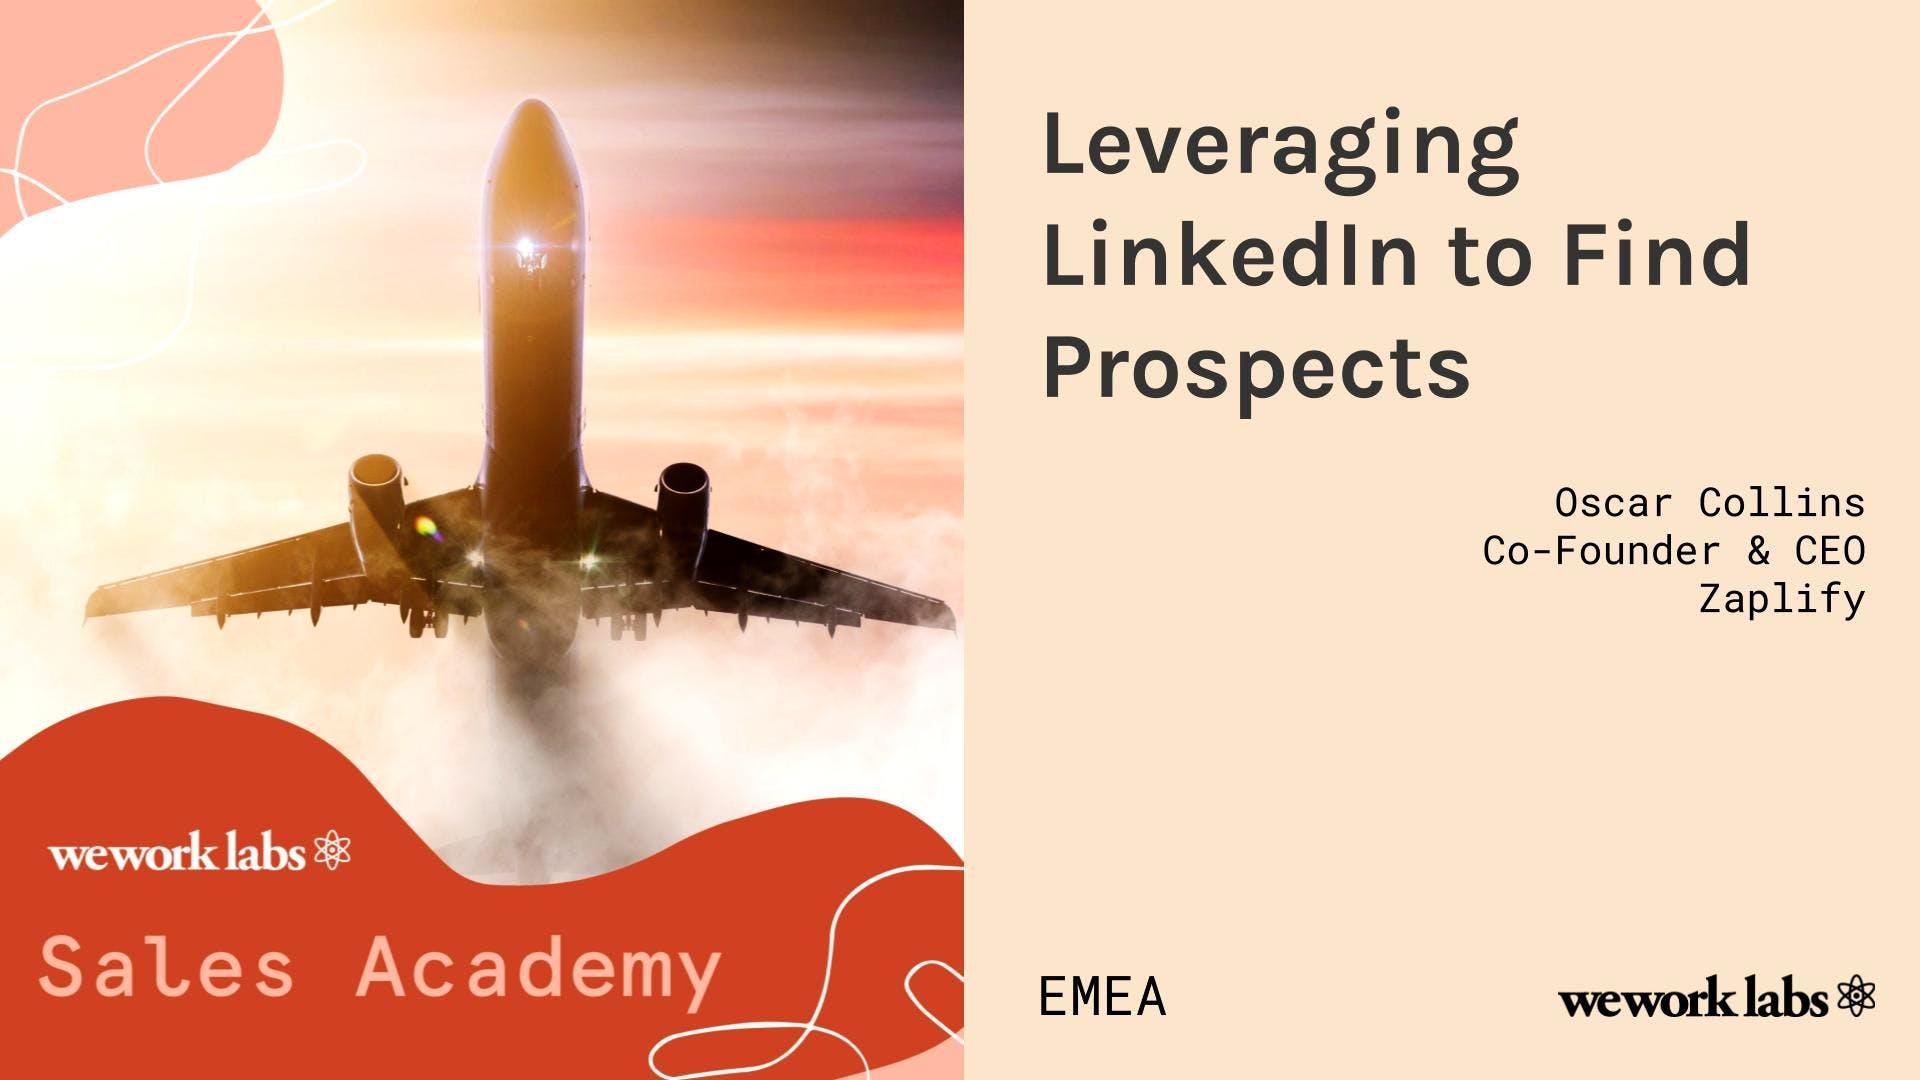 Sales Academy (EMEA): Leveraging LinkedIn to Find Prospects